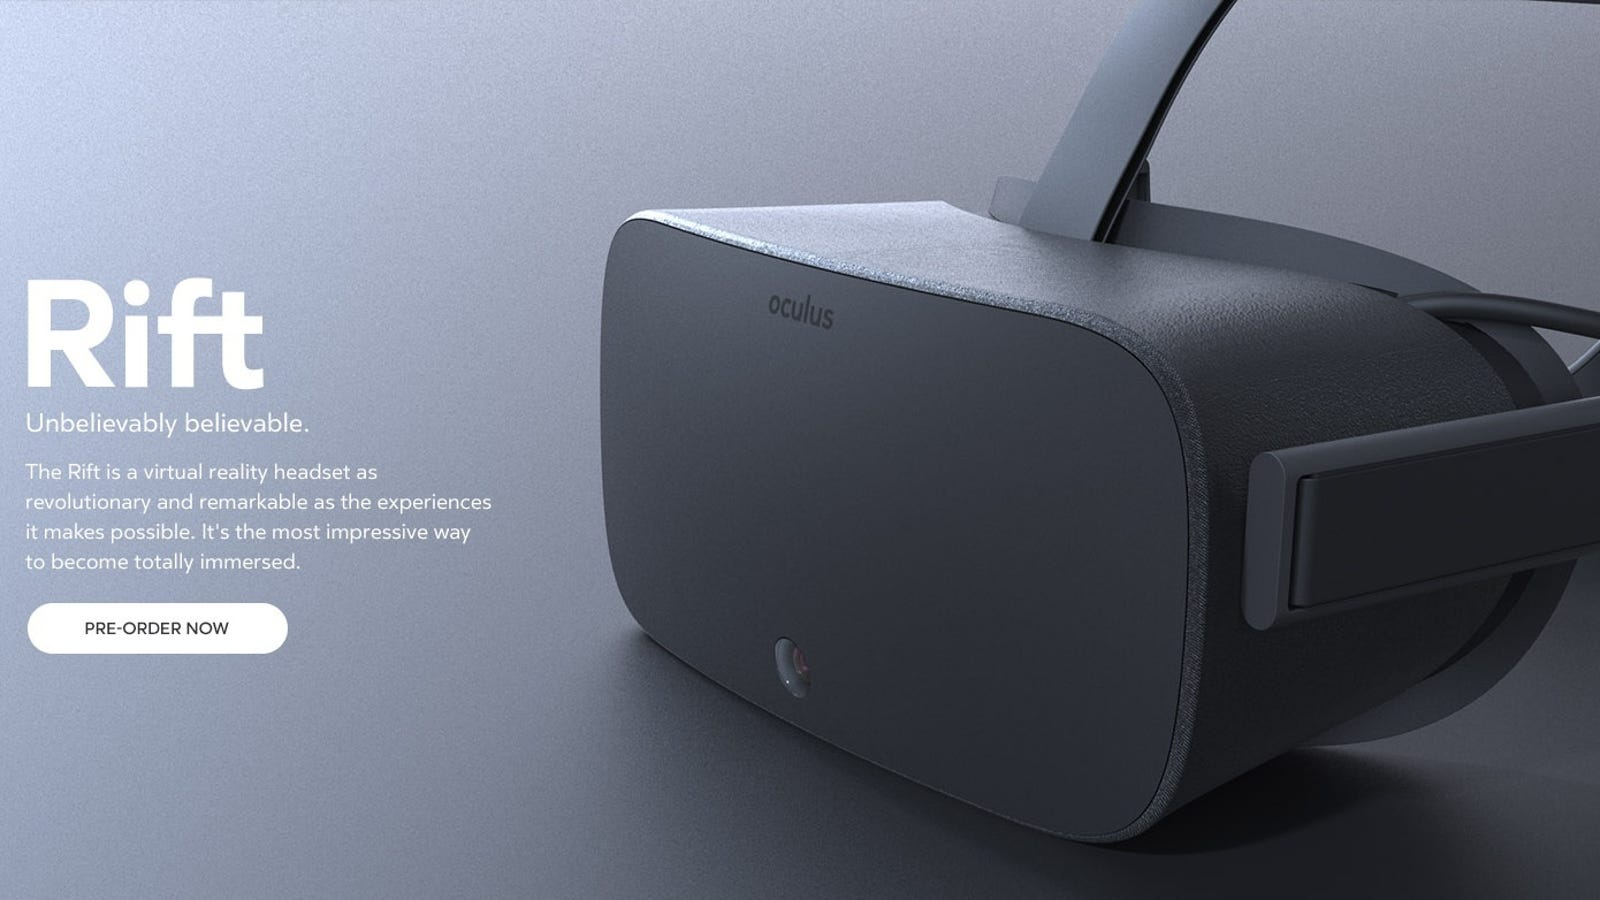 975e4c7a509d Giant Leak Shows Us How The Final Oculus Rift Looked in 2014